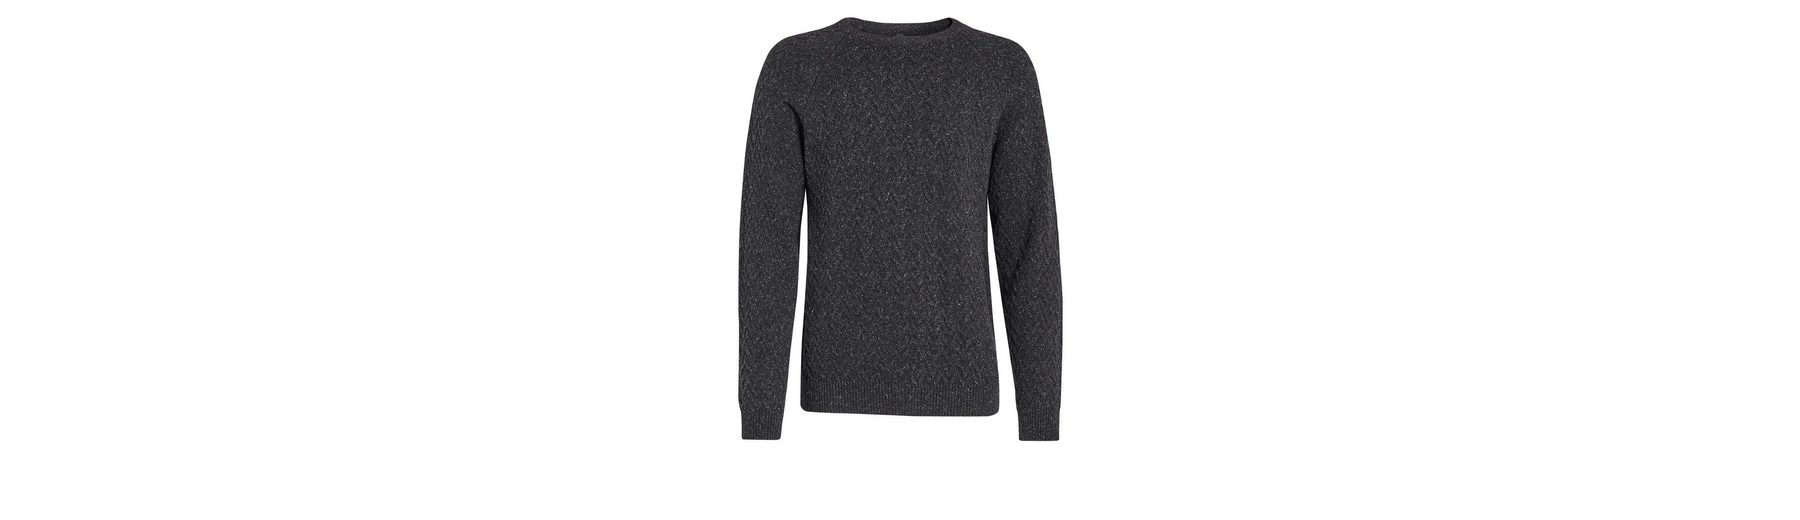 Next Pullover mit Zickzackmuster Besuch Viele Farben Fälschung Outlet Factory Outlet Mit Mastercard CUcLQ5z